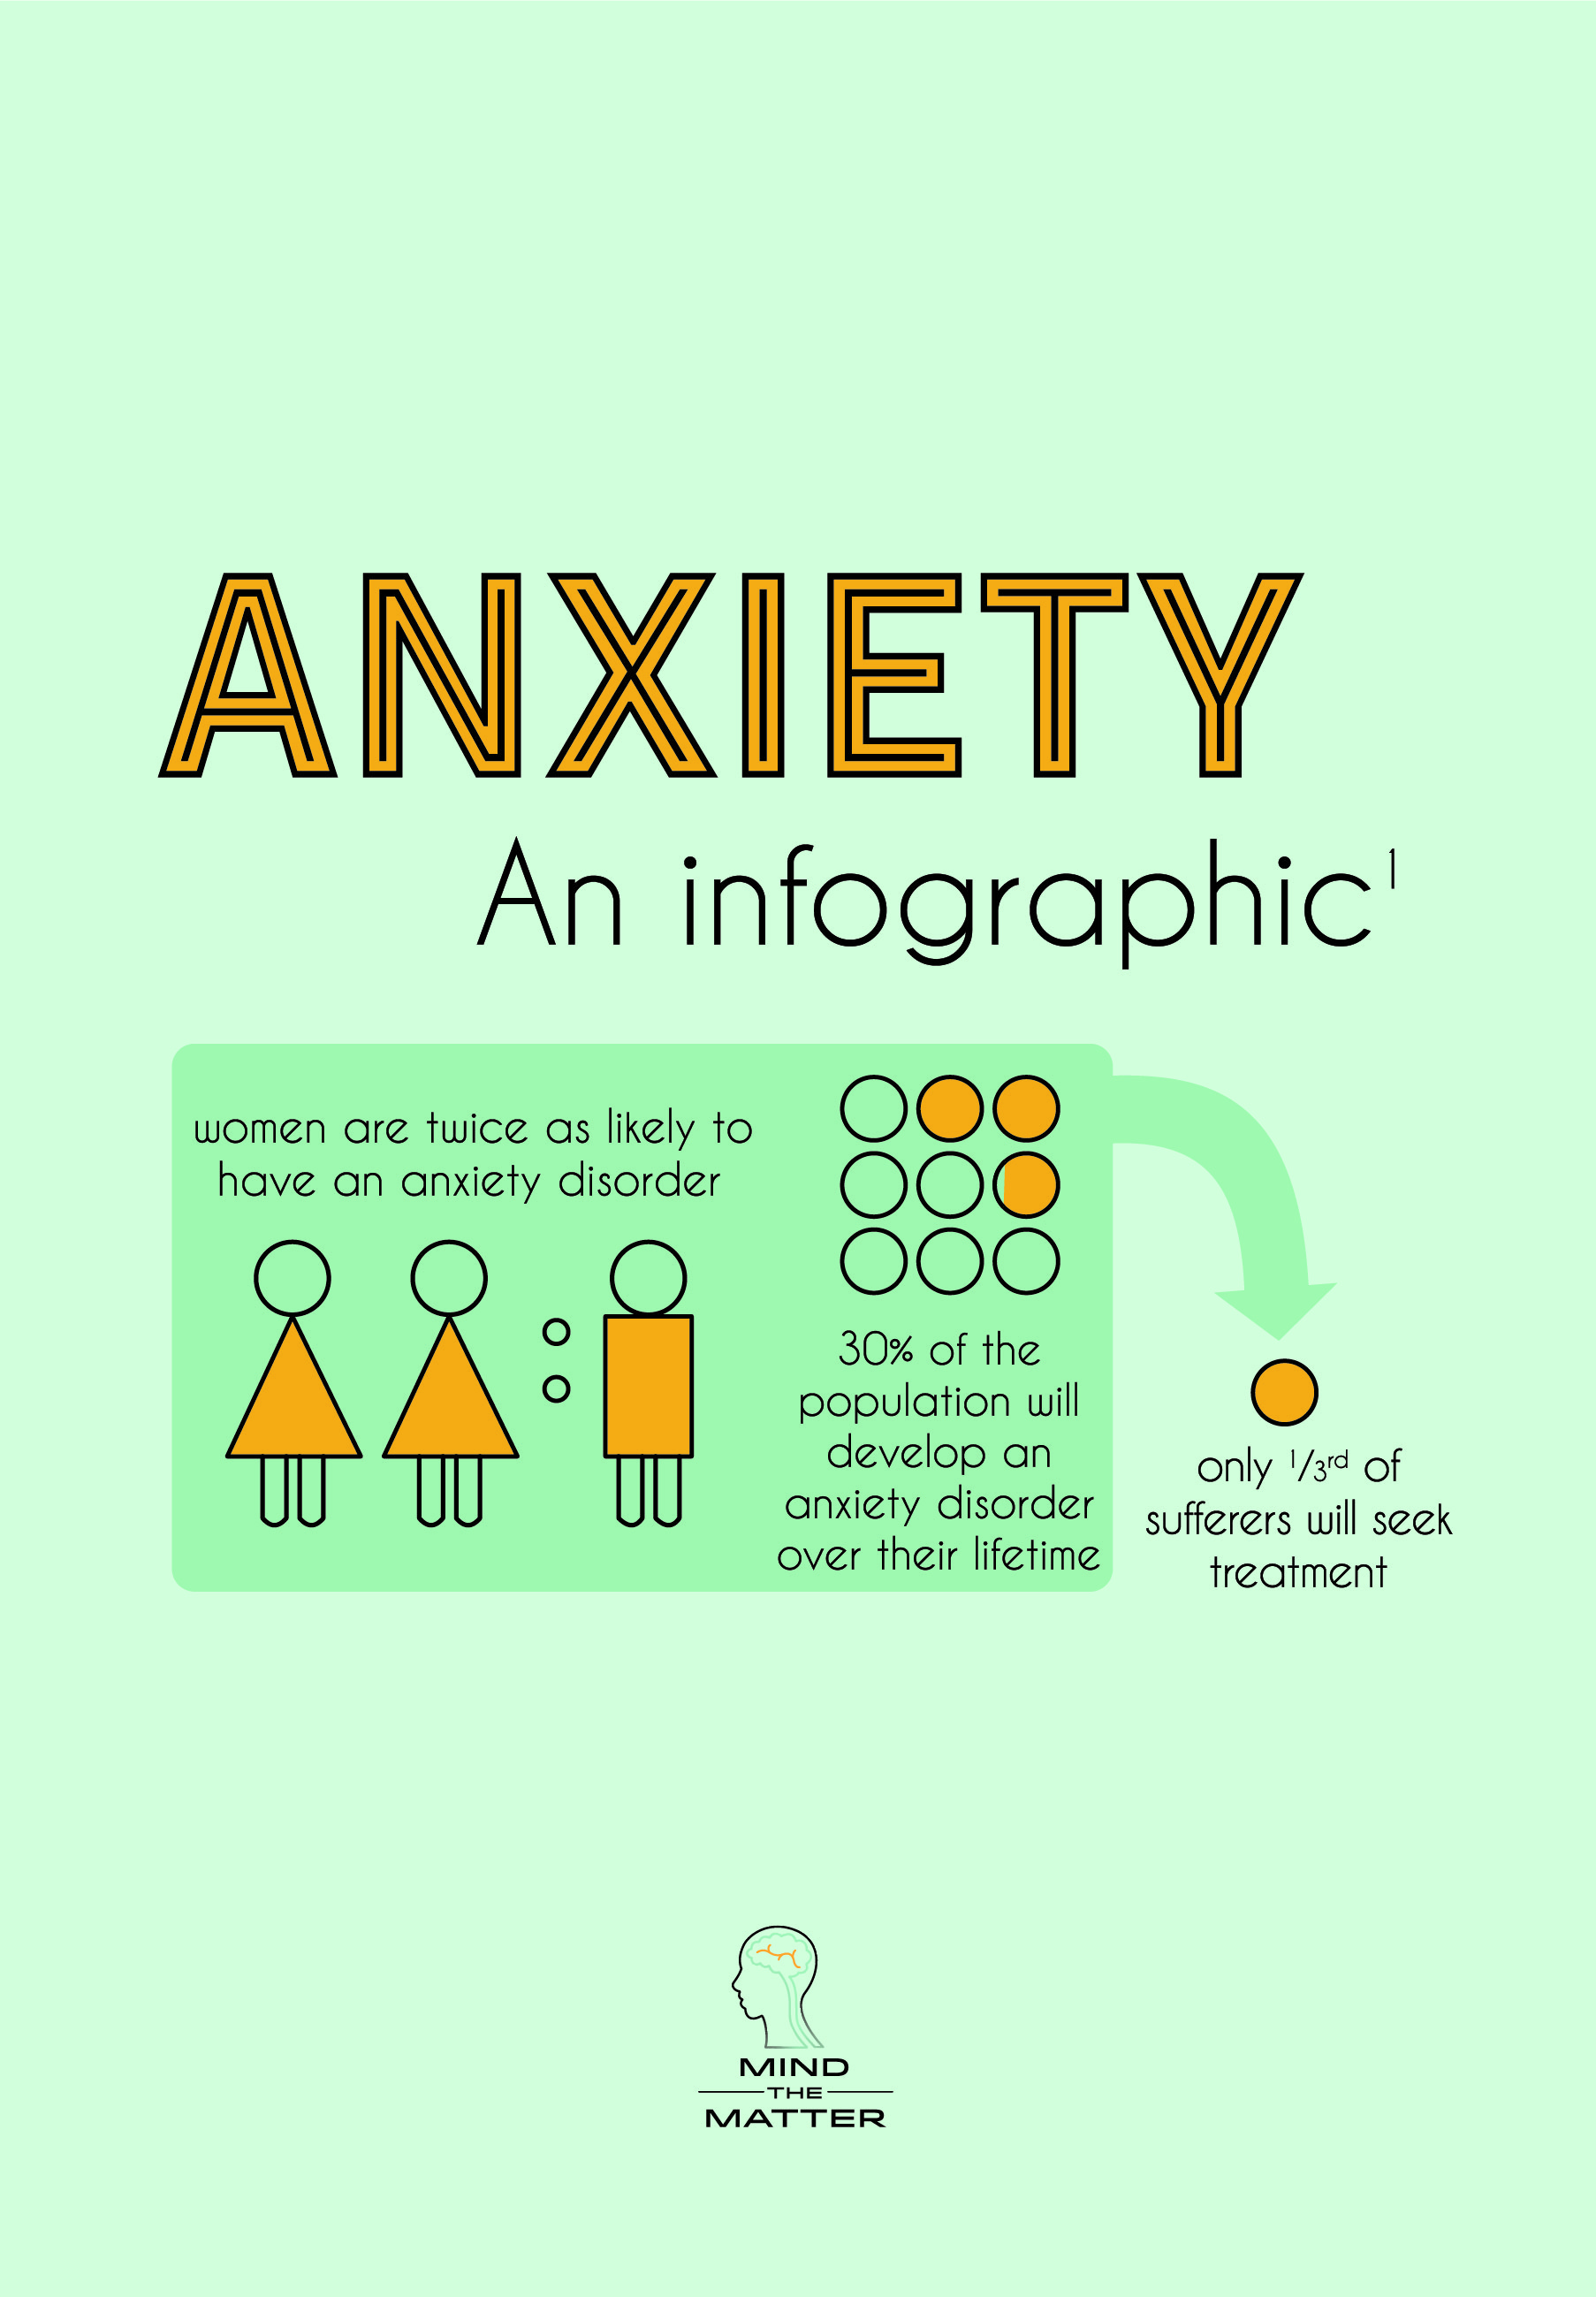 anxiety infographic print_2019-01-01-01.jpg